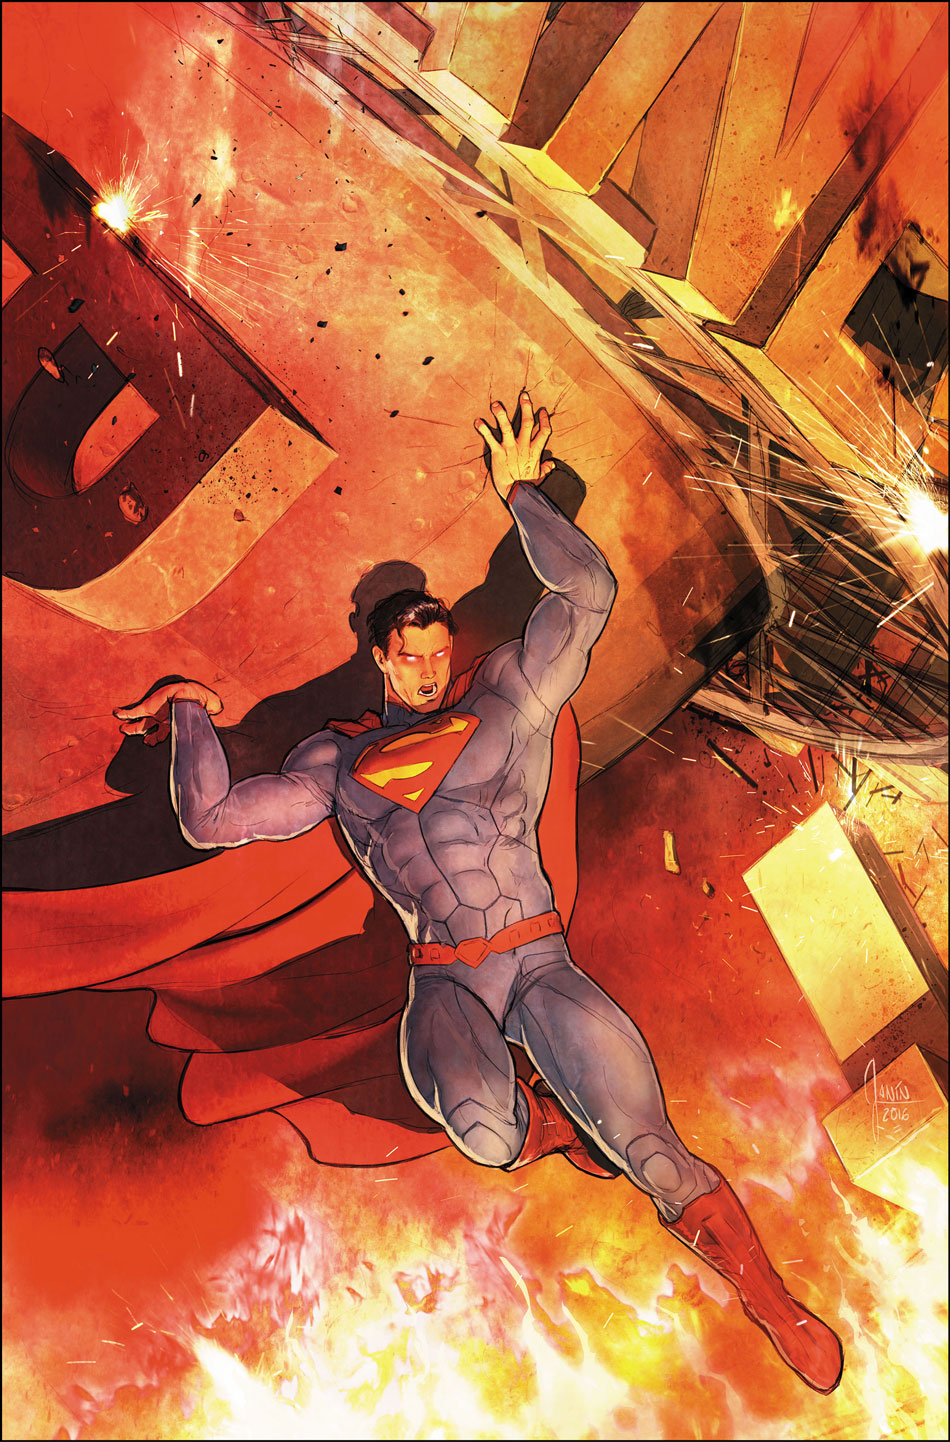 Superman #52 variant cover by Mikel Janin